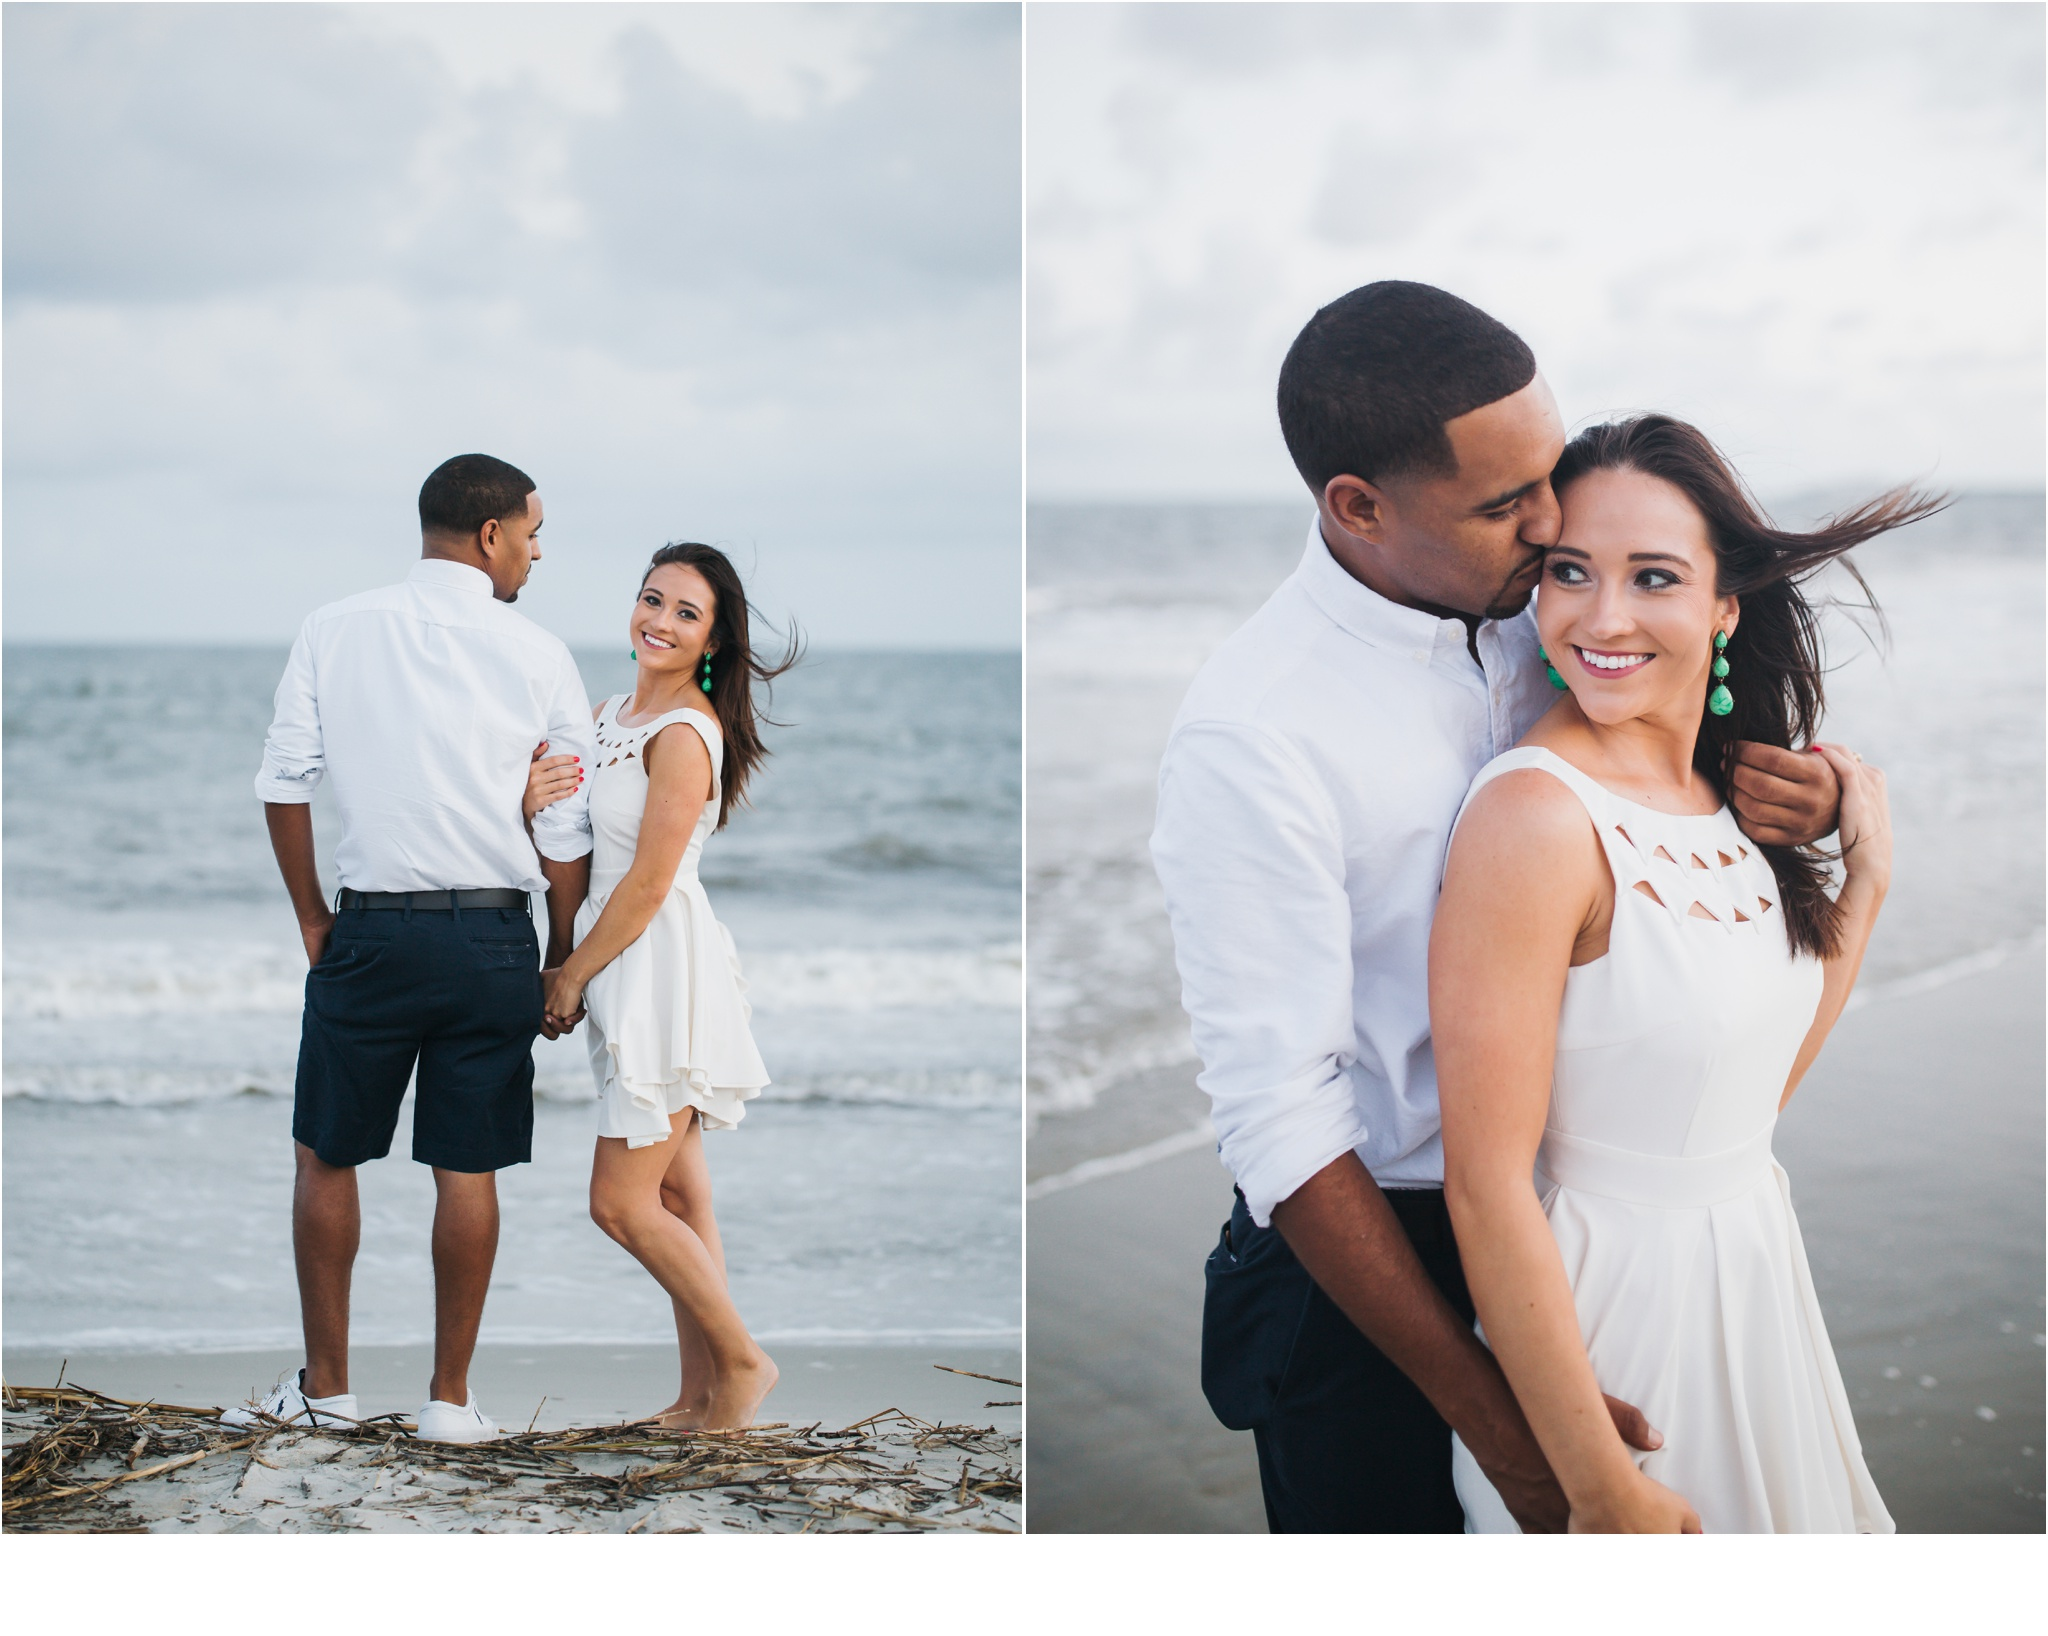 Rainey_Gregg_Photography_St._Simons_Island_Georgia_California_Wedding_Portrait_Photography_1457.jpg